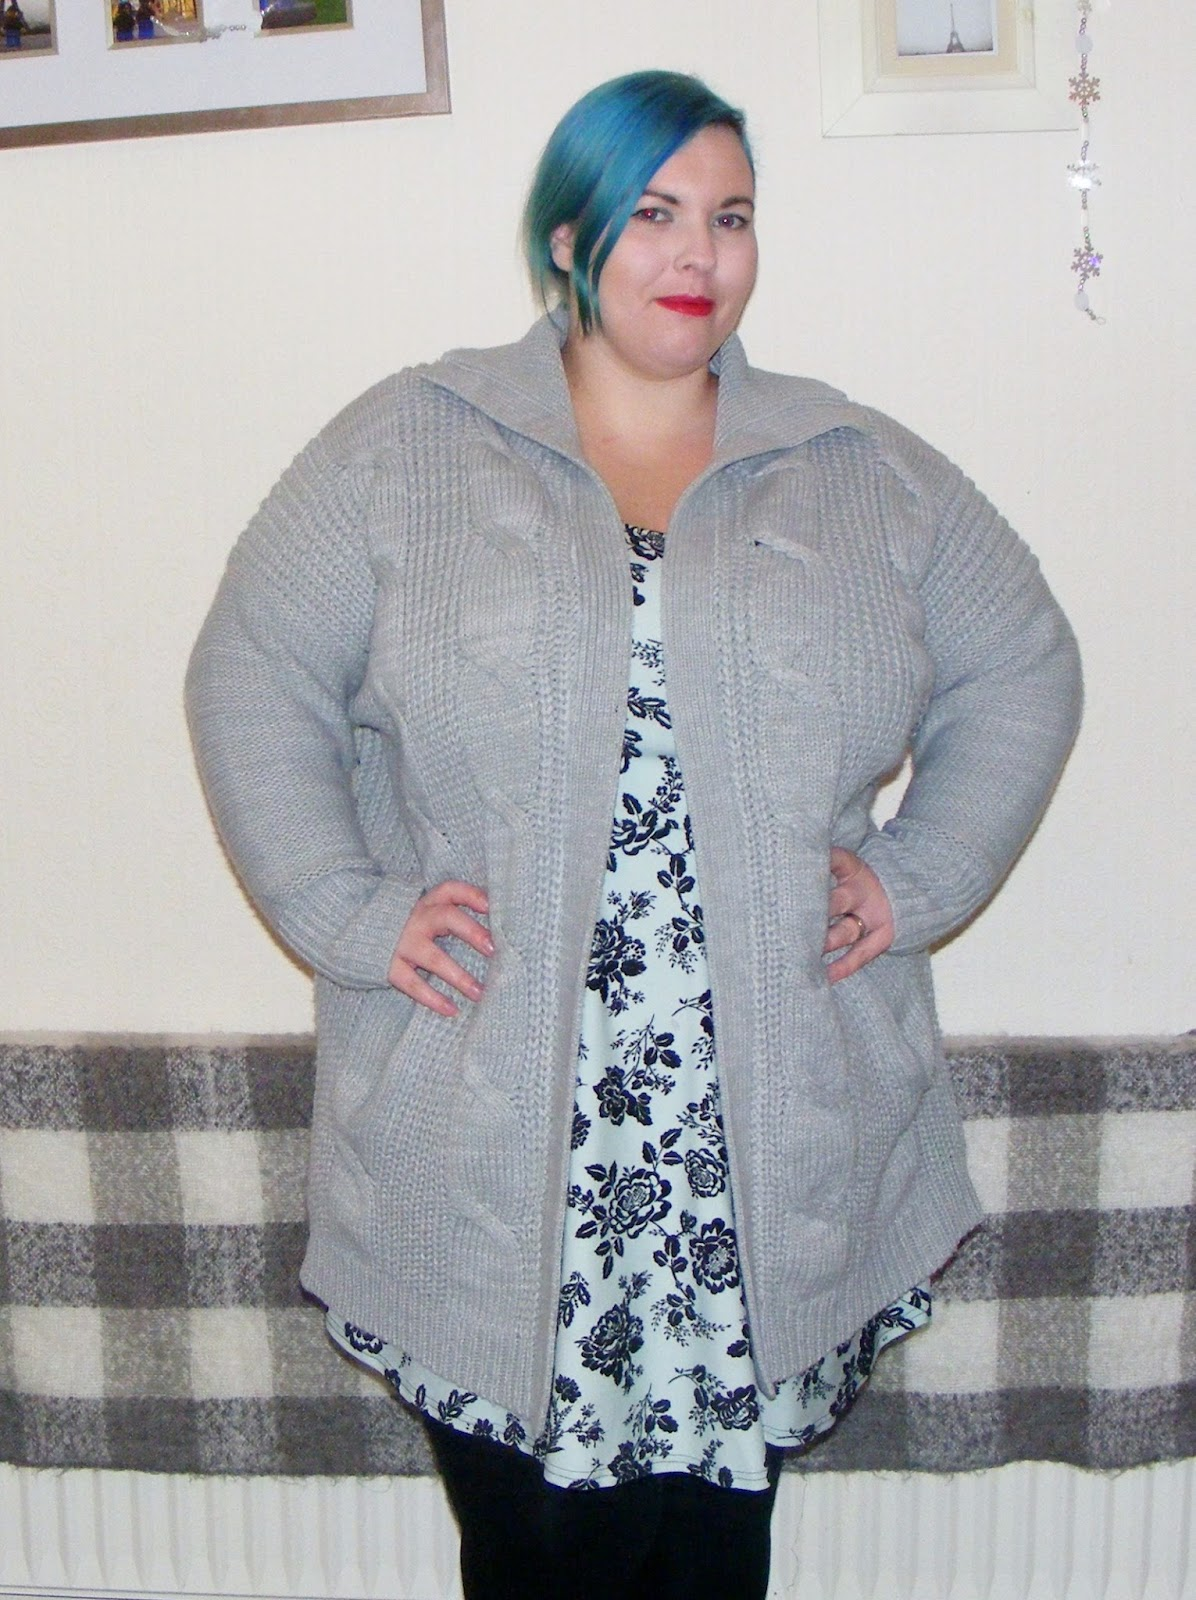 coatigan, jd williams, grey, coat, cardigan, plus size fashion, plus size, fat, fatshion, chubby, woman, blue hair, clothing, bbw, posing, shopping